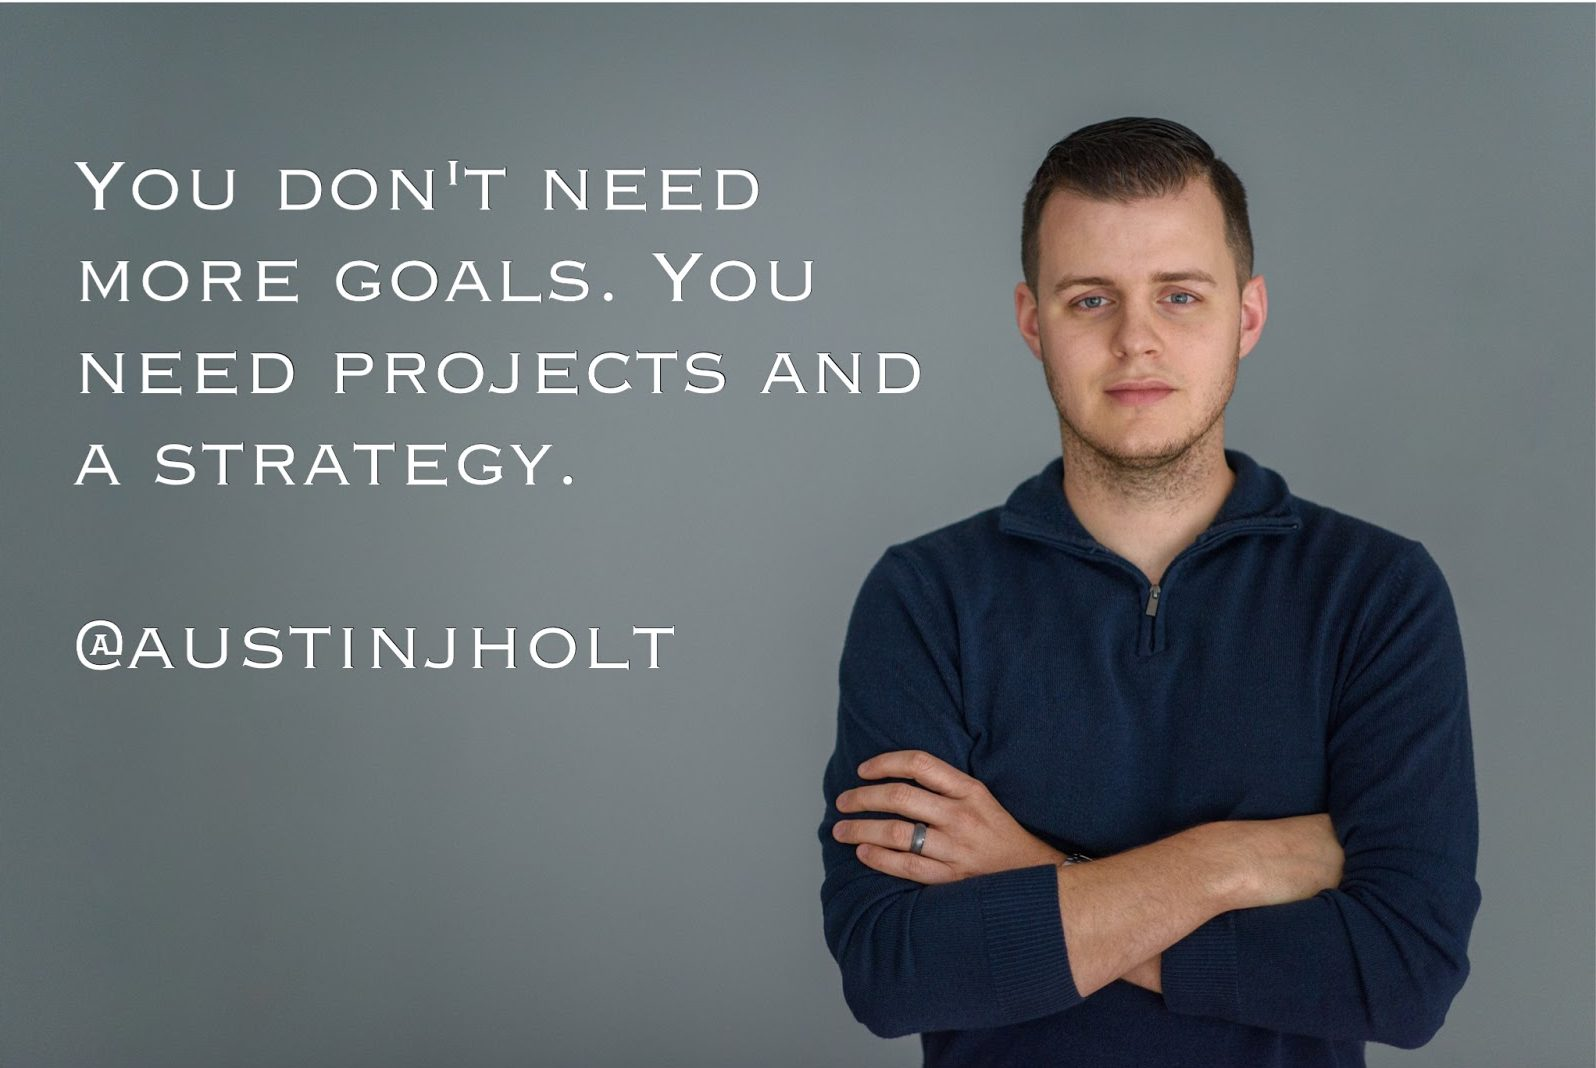 You Don't Need More Goals You Need PROJECTS and a Strategy